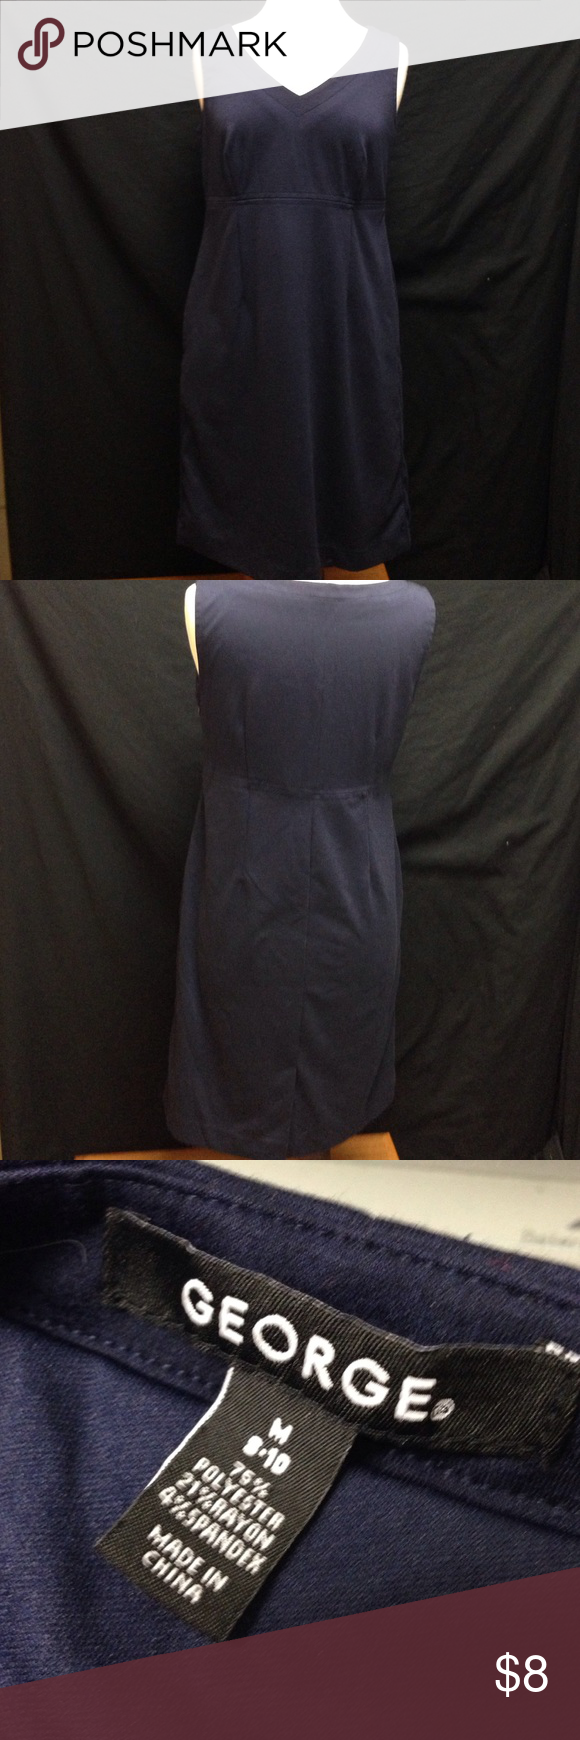 George Navy Blue Romper Dress Bust 40 Length 37.5 This dress is in excellent condition only worn once or twice.  the material stretches and it also has a side zipper under the arm. George Dresses Midi